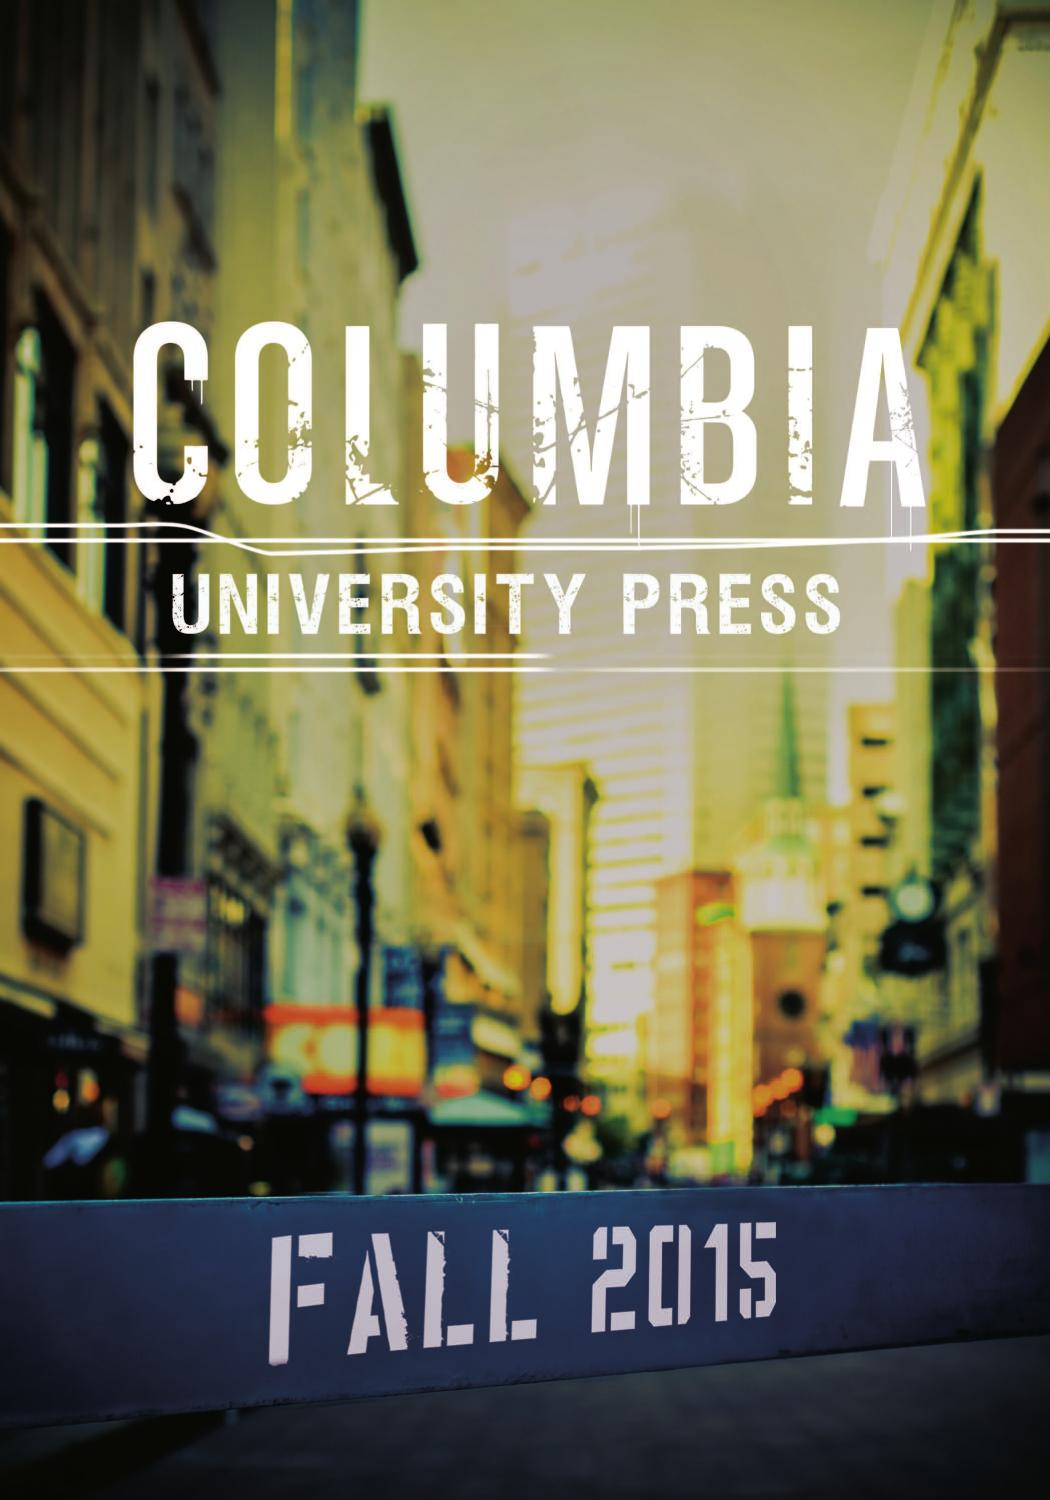 Am i good enough for columbia University?